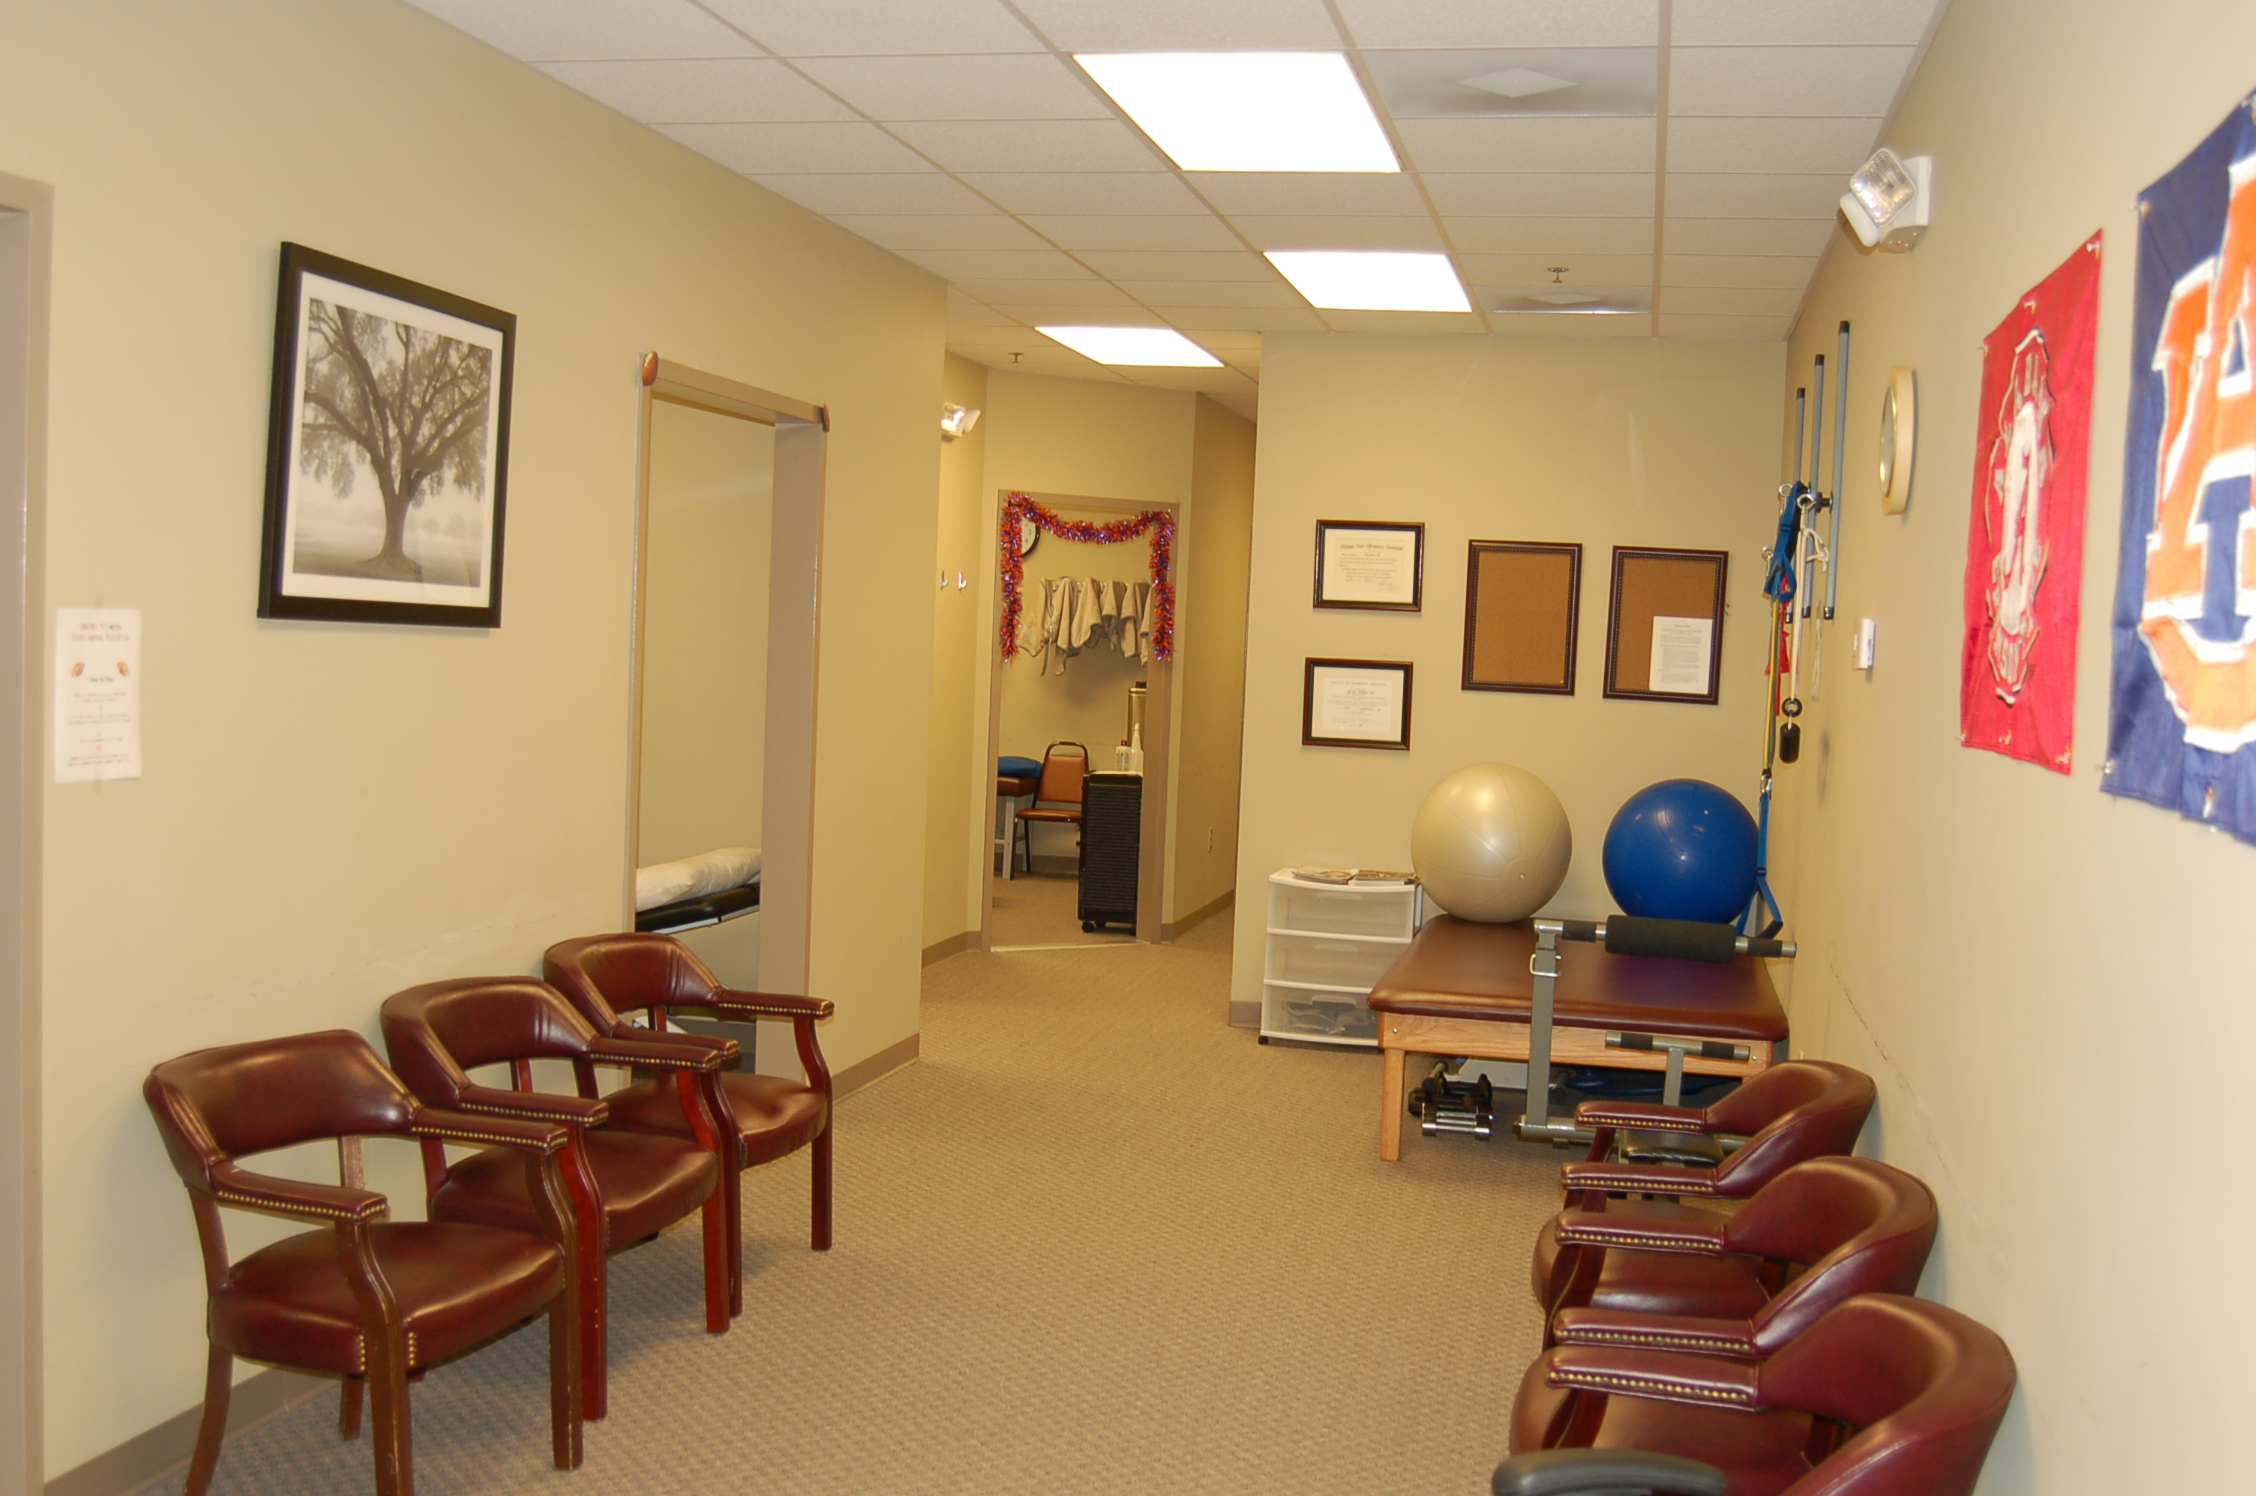 Millar Chiropractic - Huntsville Al (Jones Valley) hall waiting area